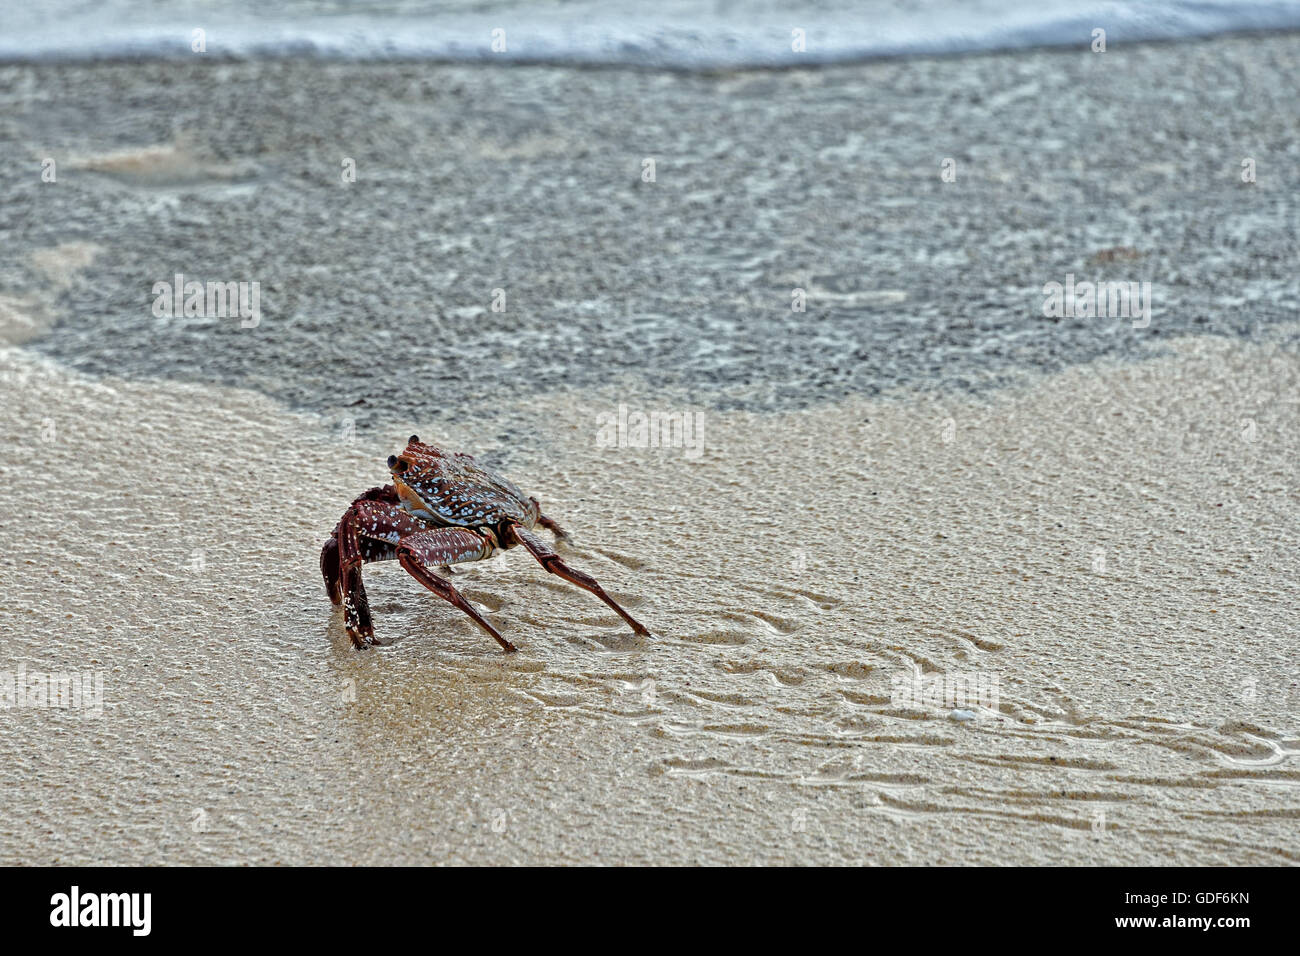 An Ascension Island Crab (Grapsus adscensionis) on a beach on Ascension Island Stock Photo